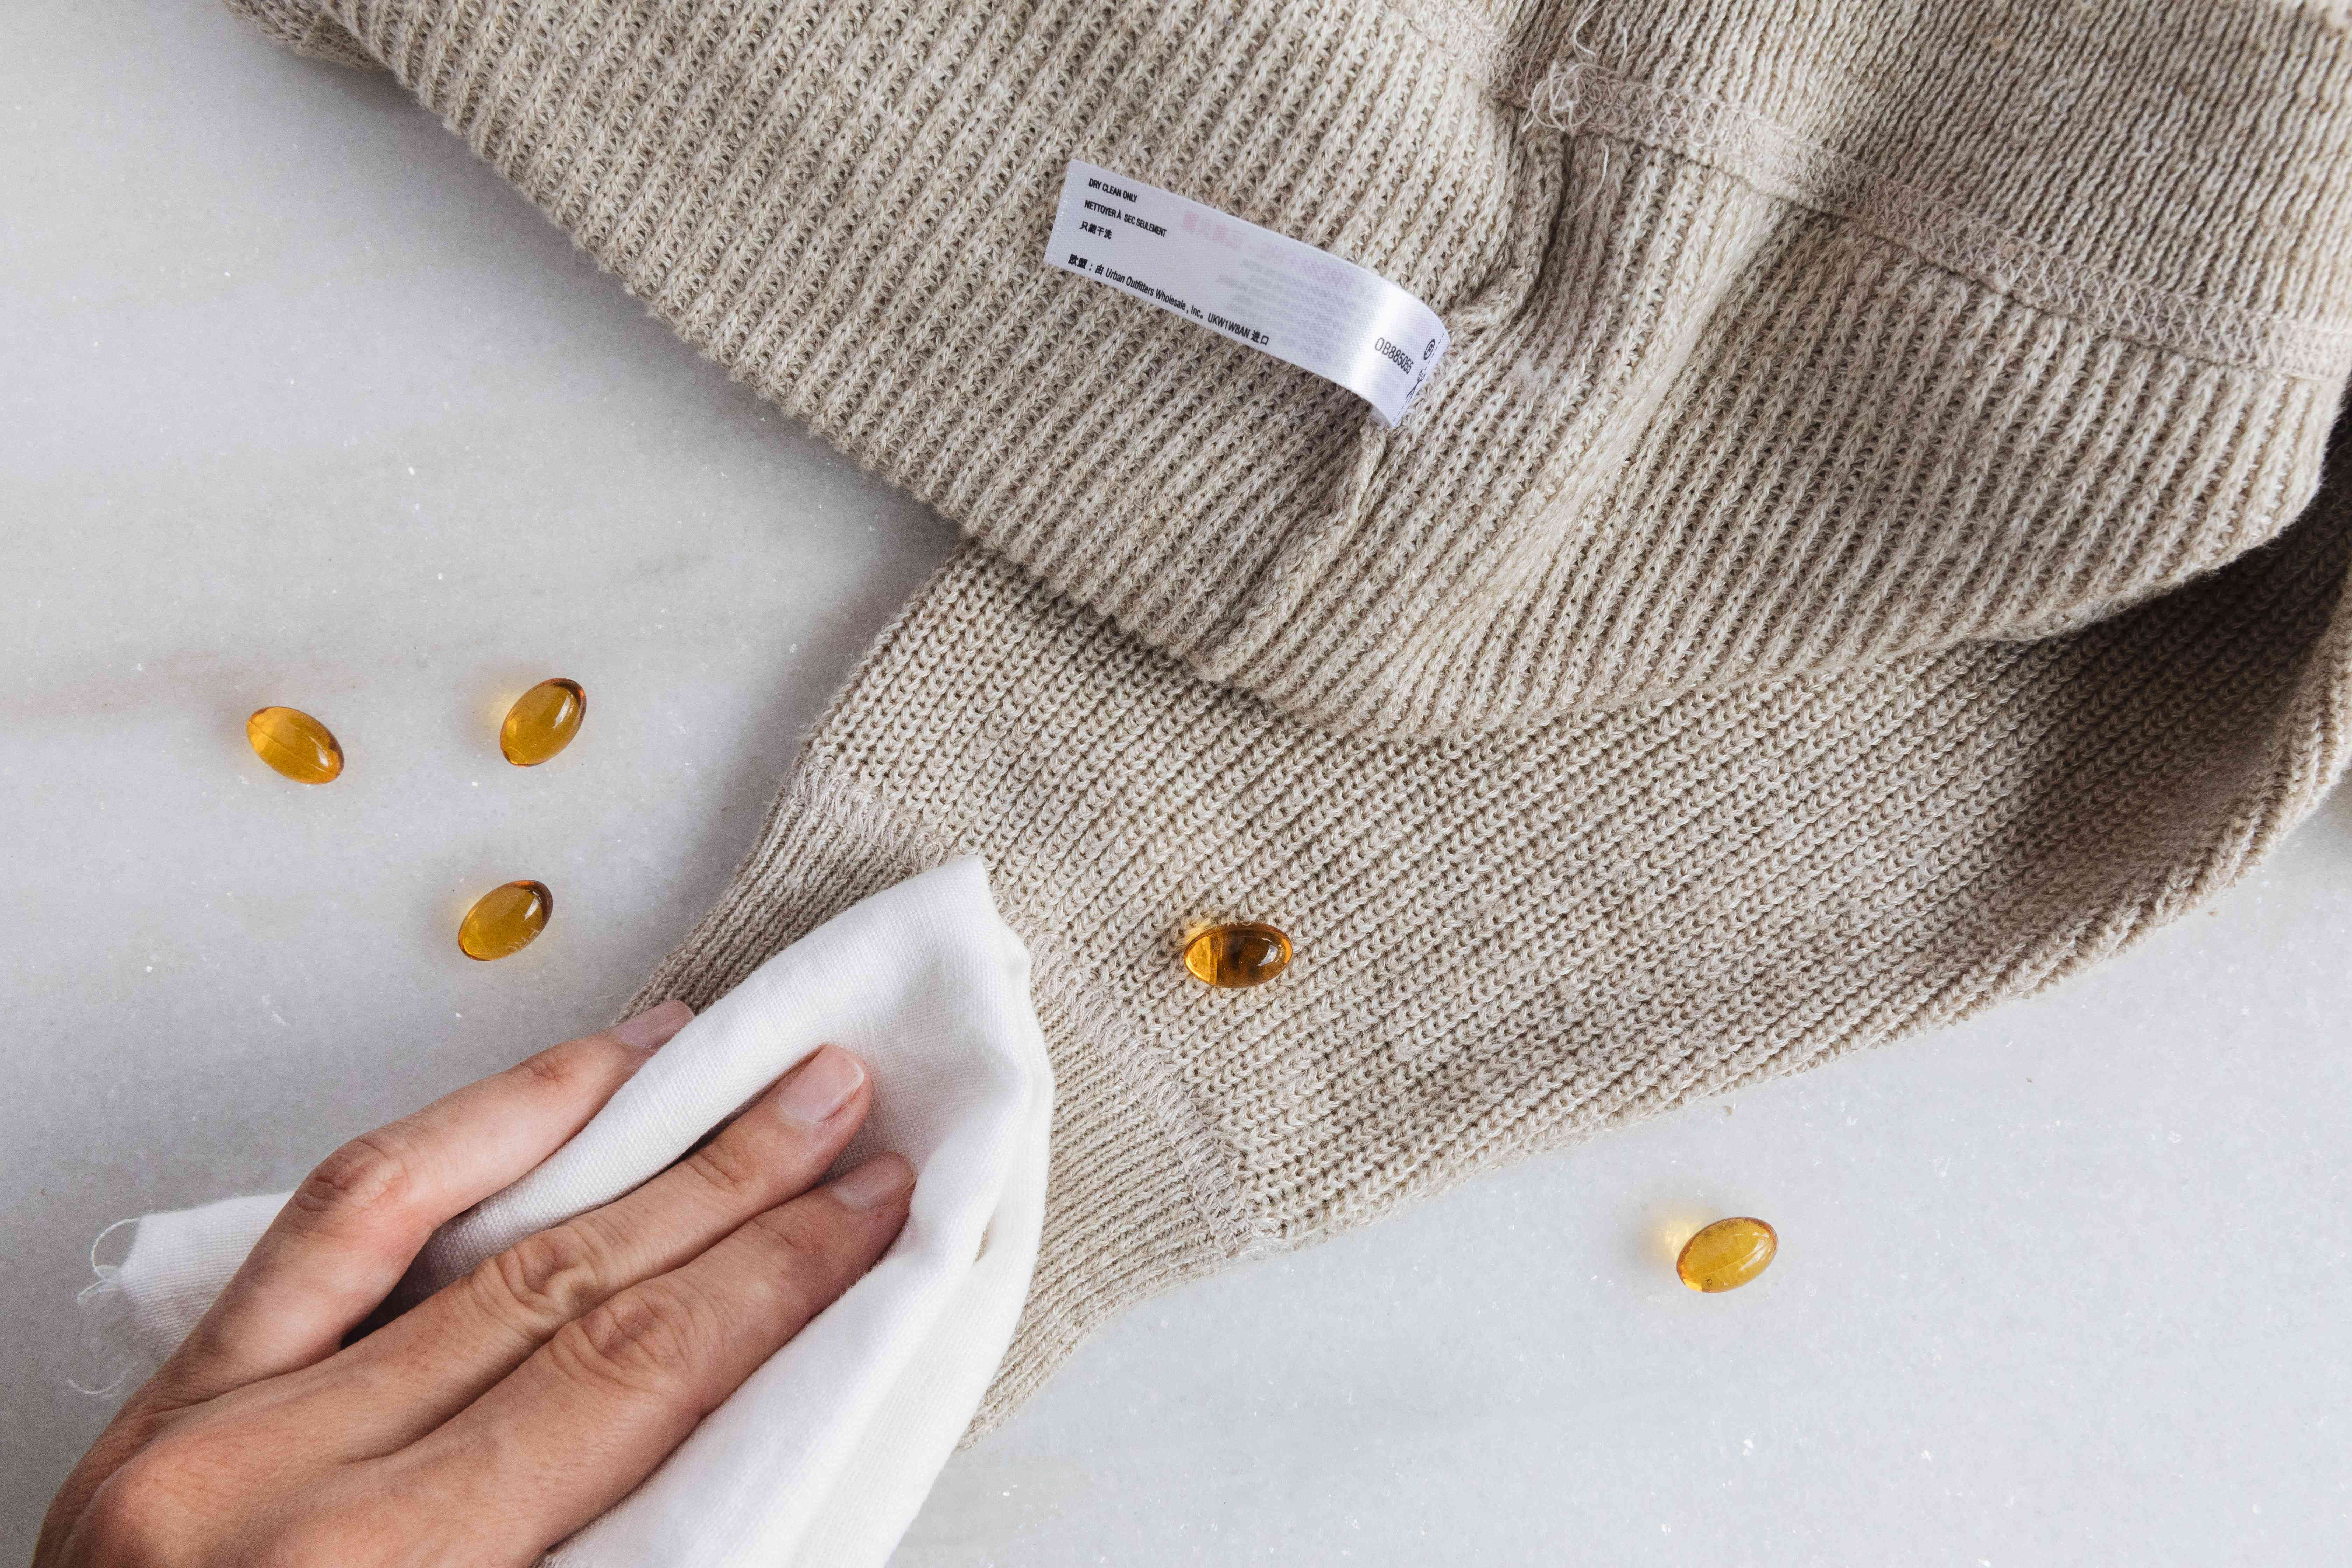 blotting a stain on a dry-clean only garment